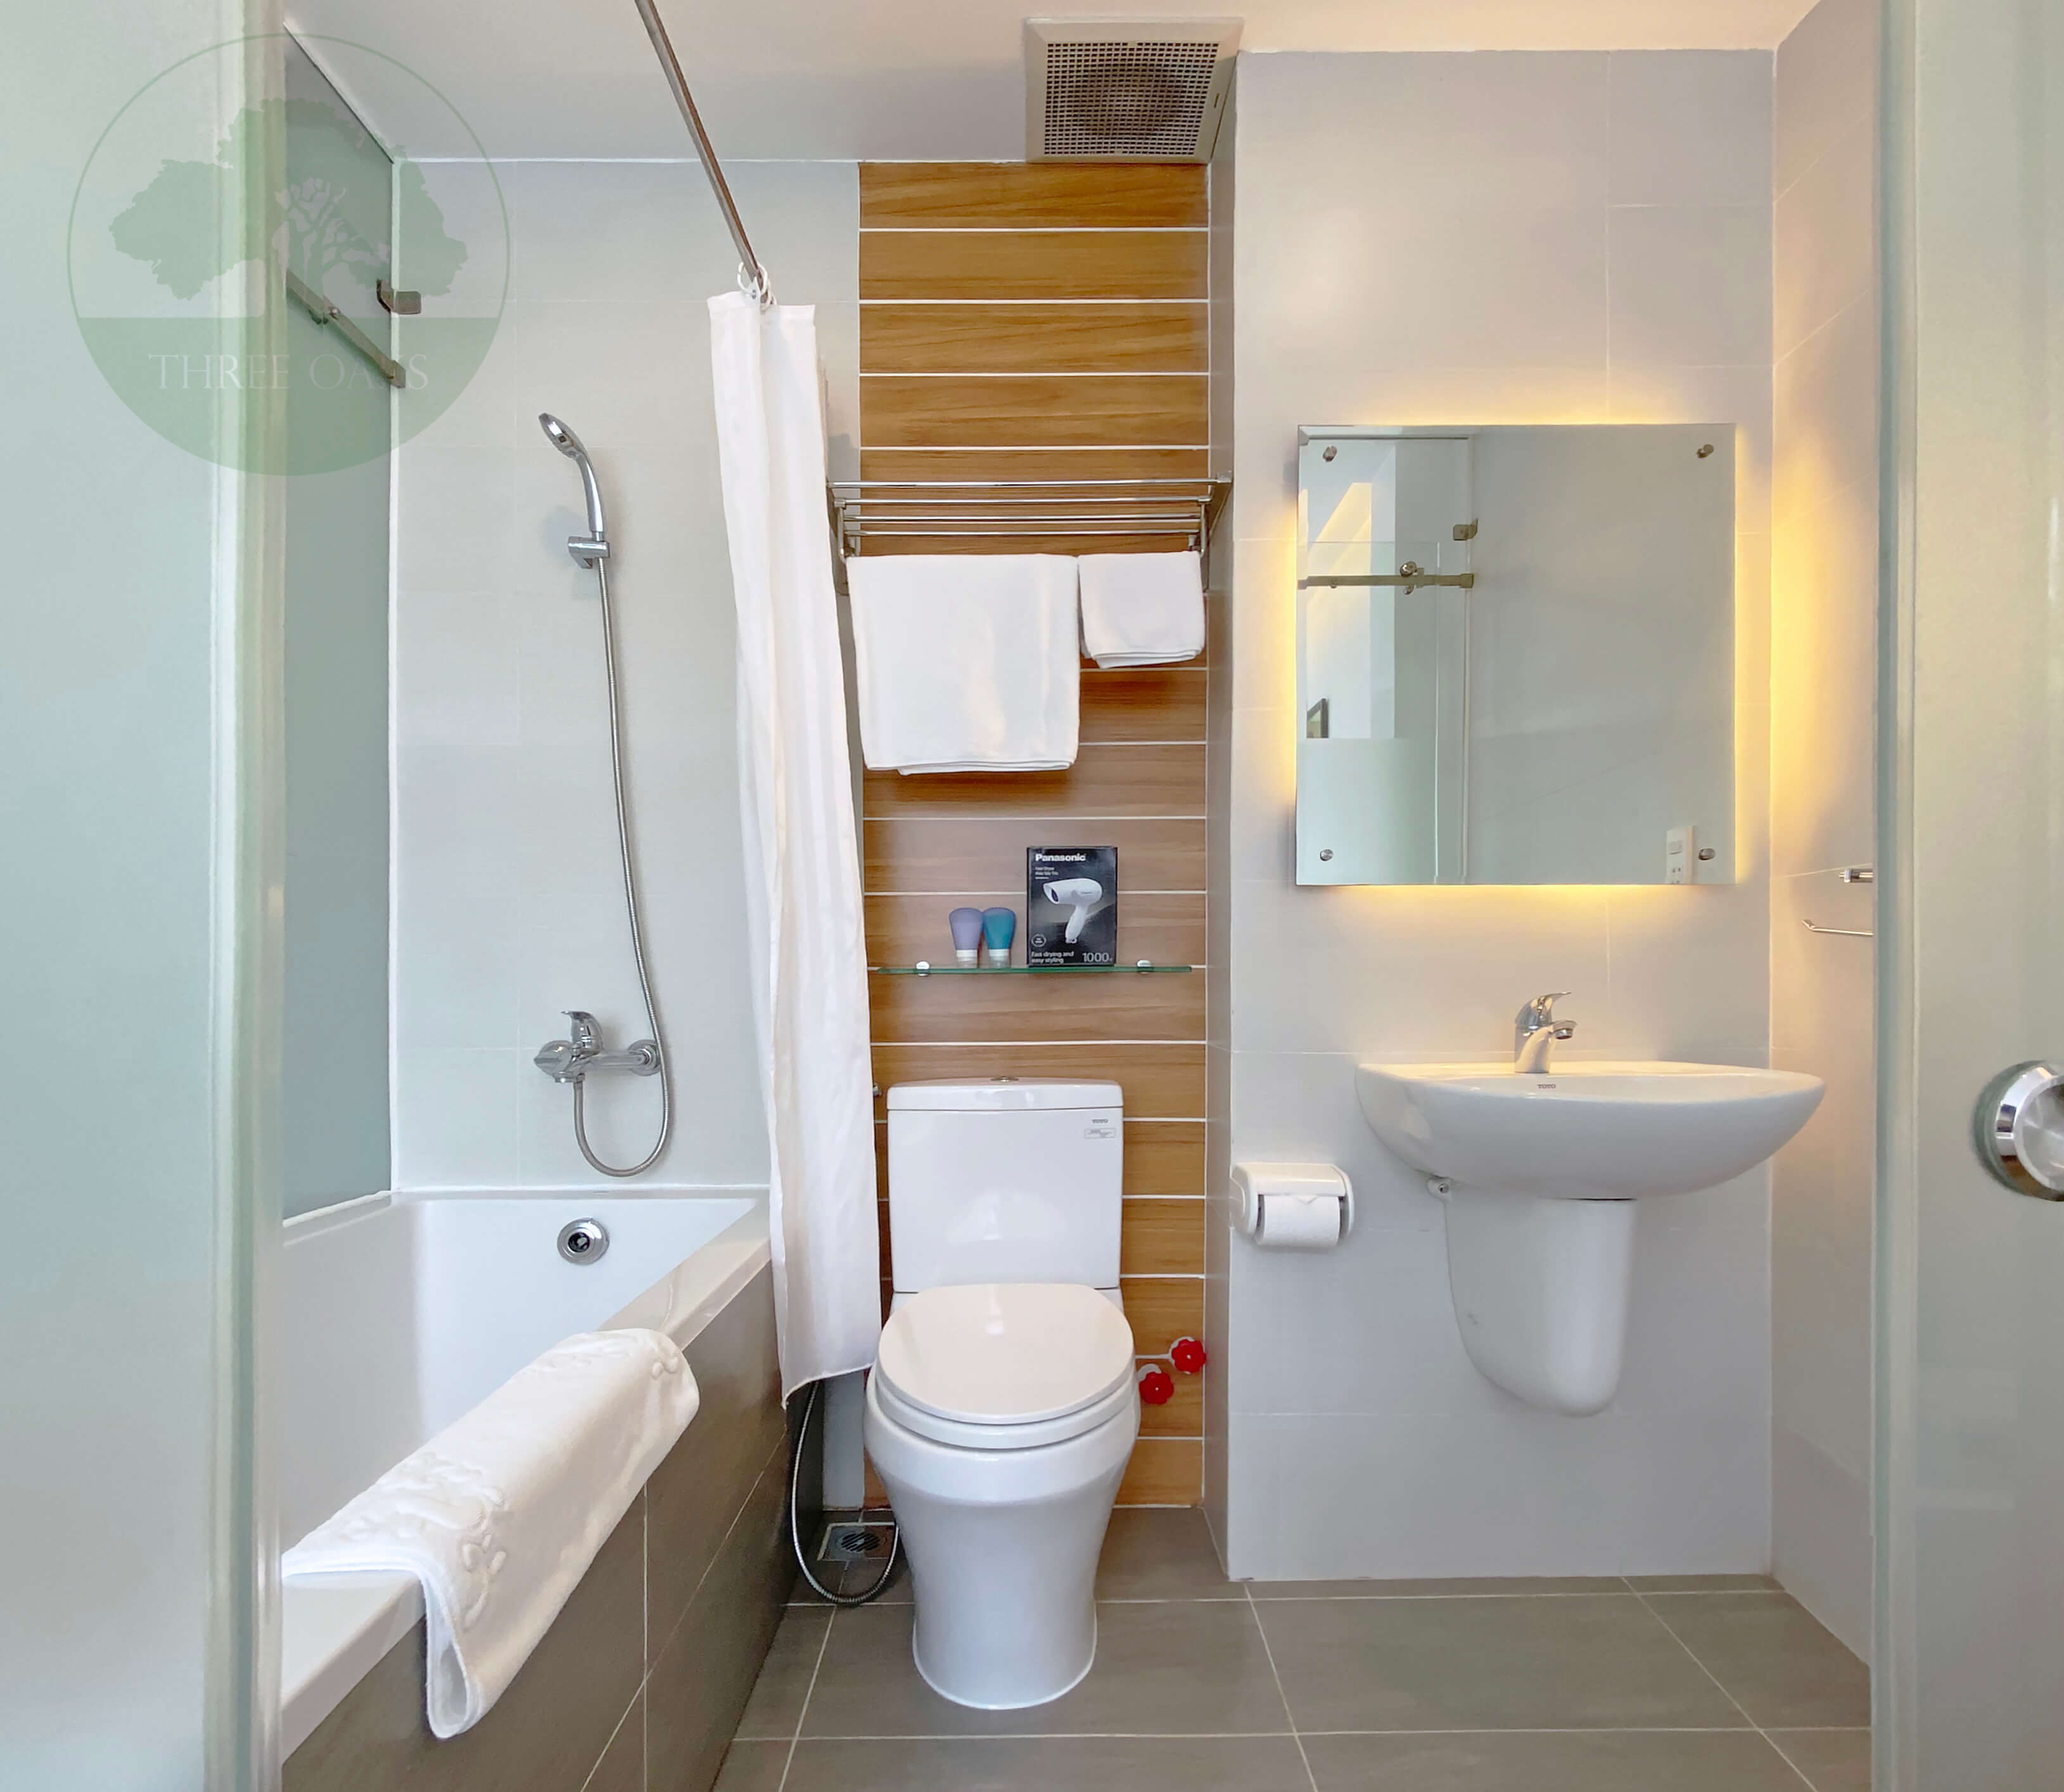 serviced-aparment-room-for-rent-saigon-One-bedroom-in-Ho-Chi-Minh-City-superior-6